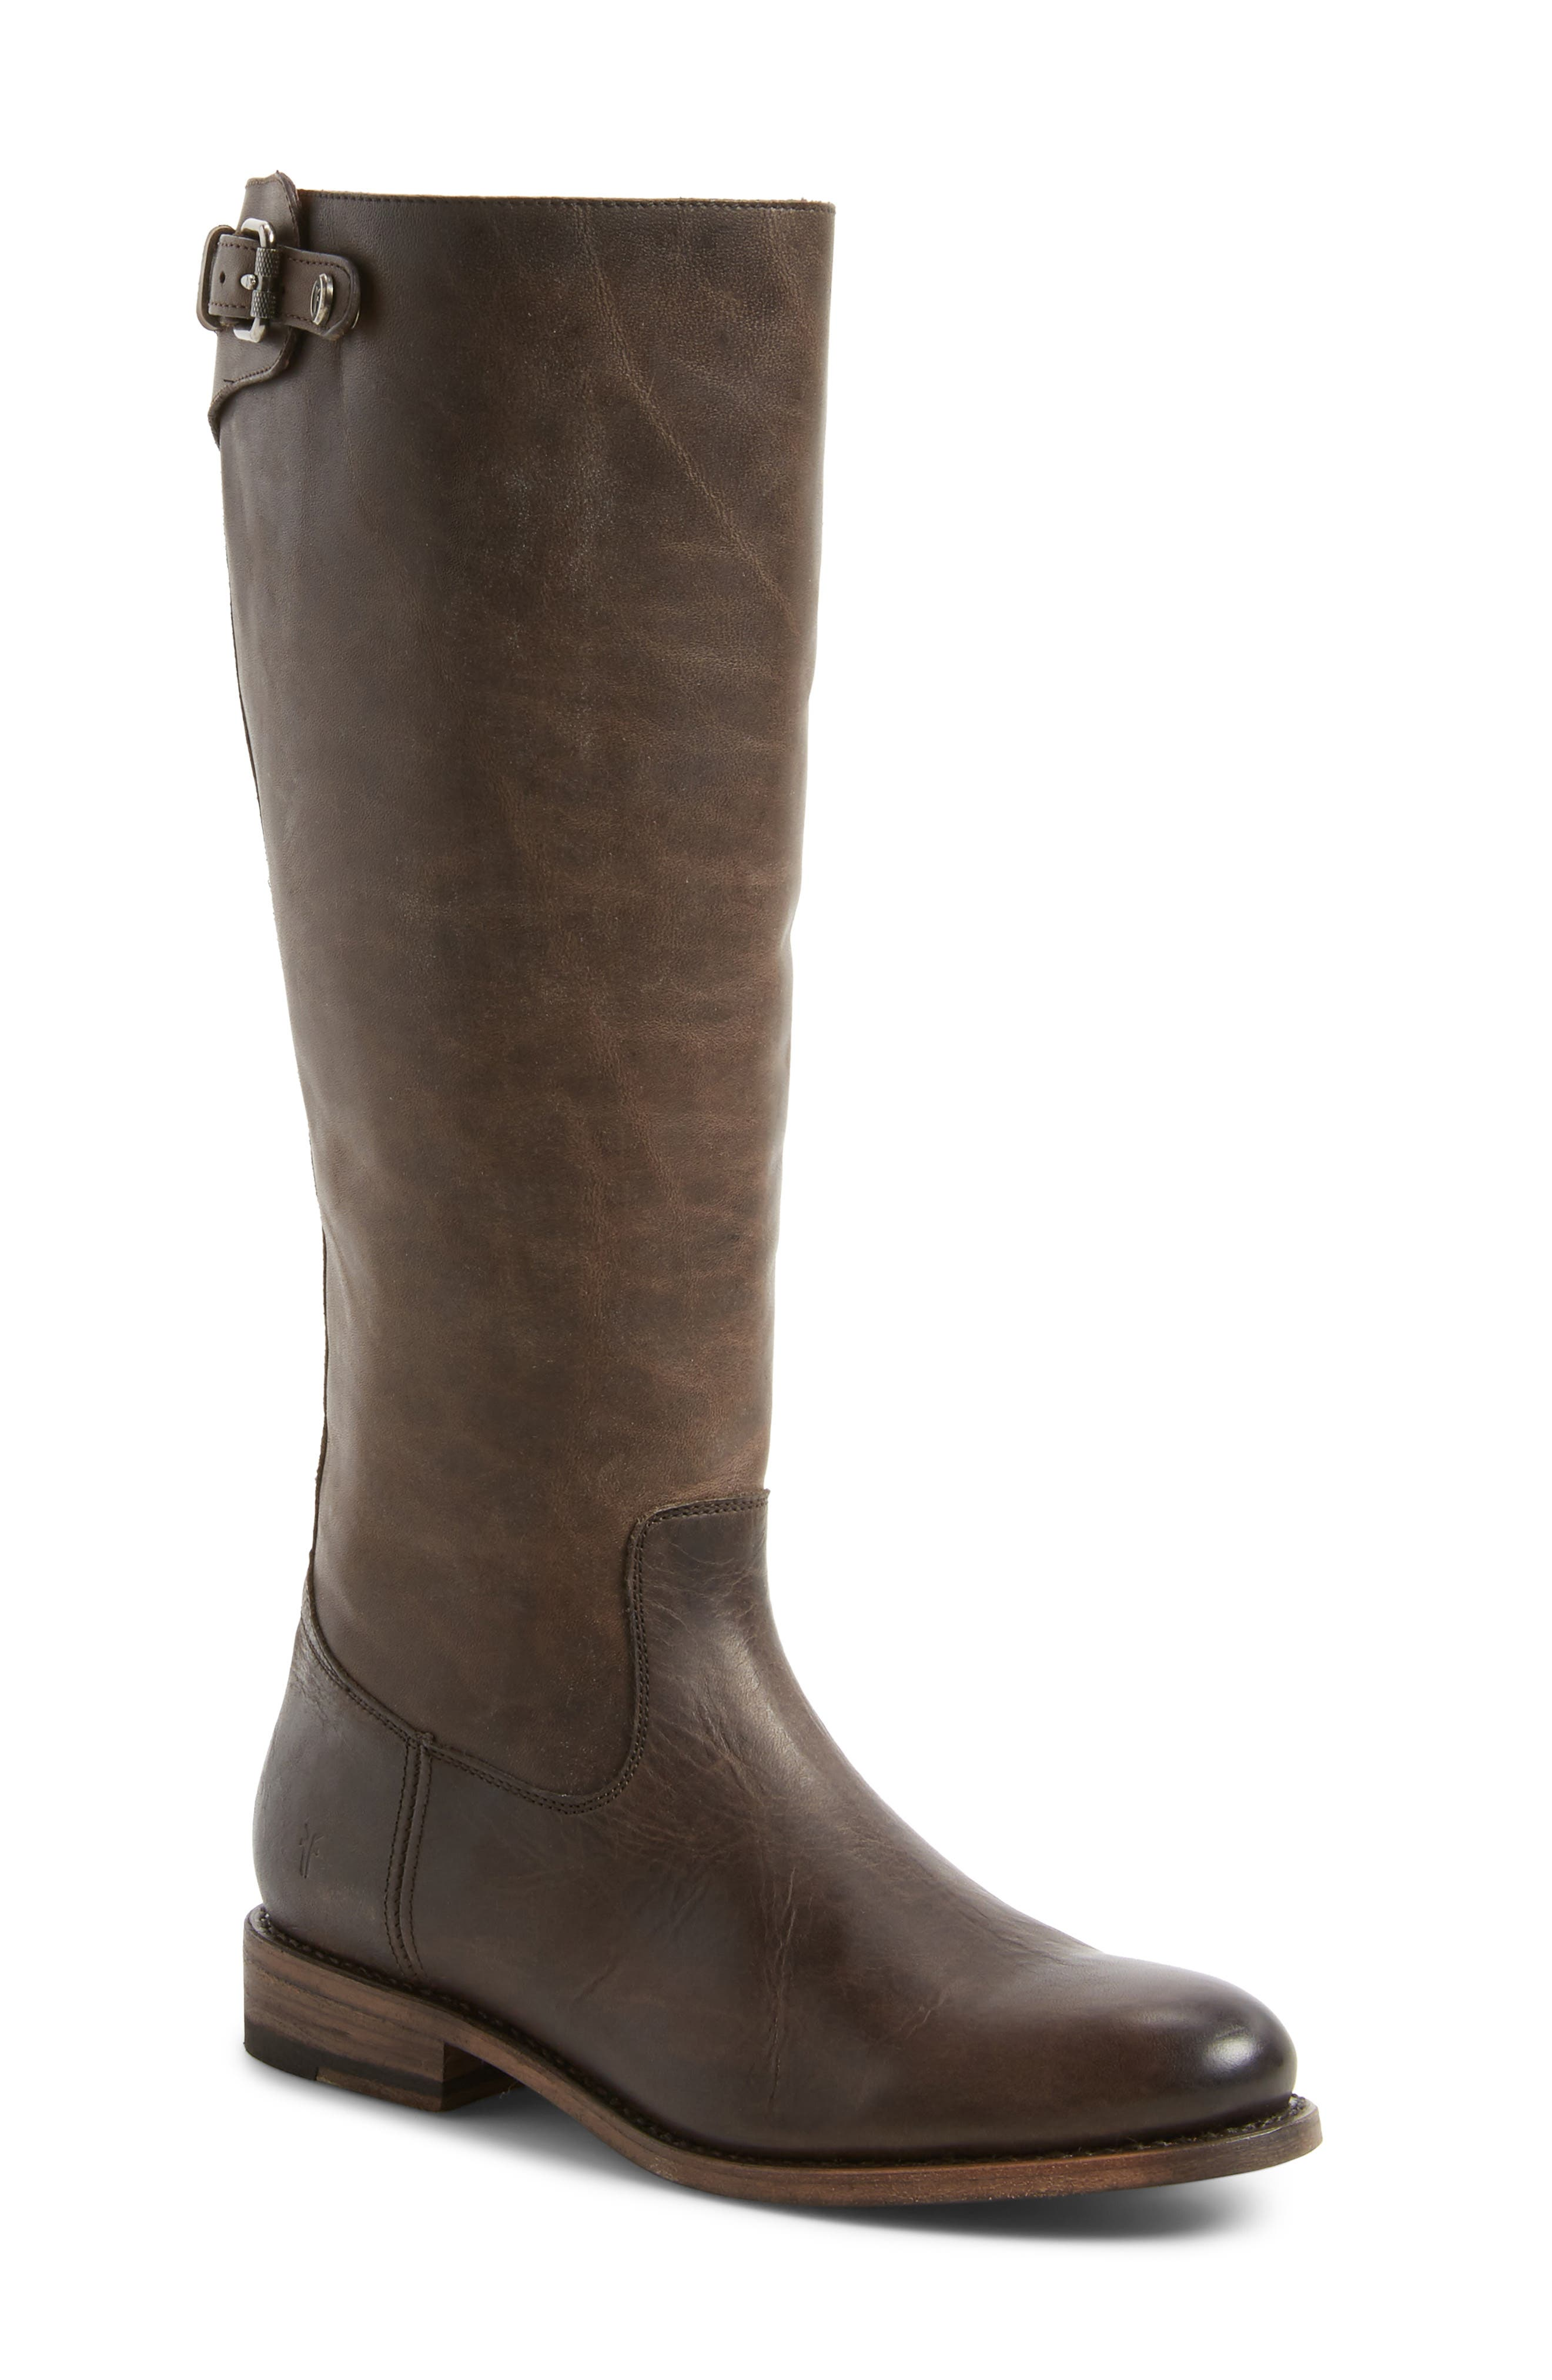 Alternate Image 1 Selected - Frye Jayden Buckle Back Zip Boot (Women) (Regular & Extended Calf)